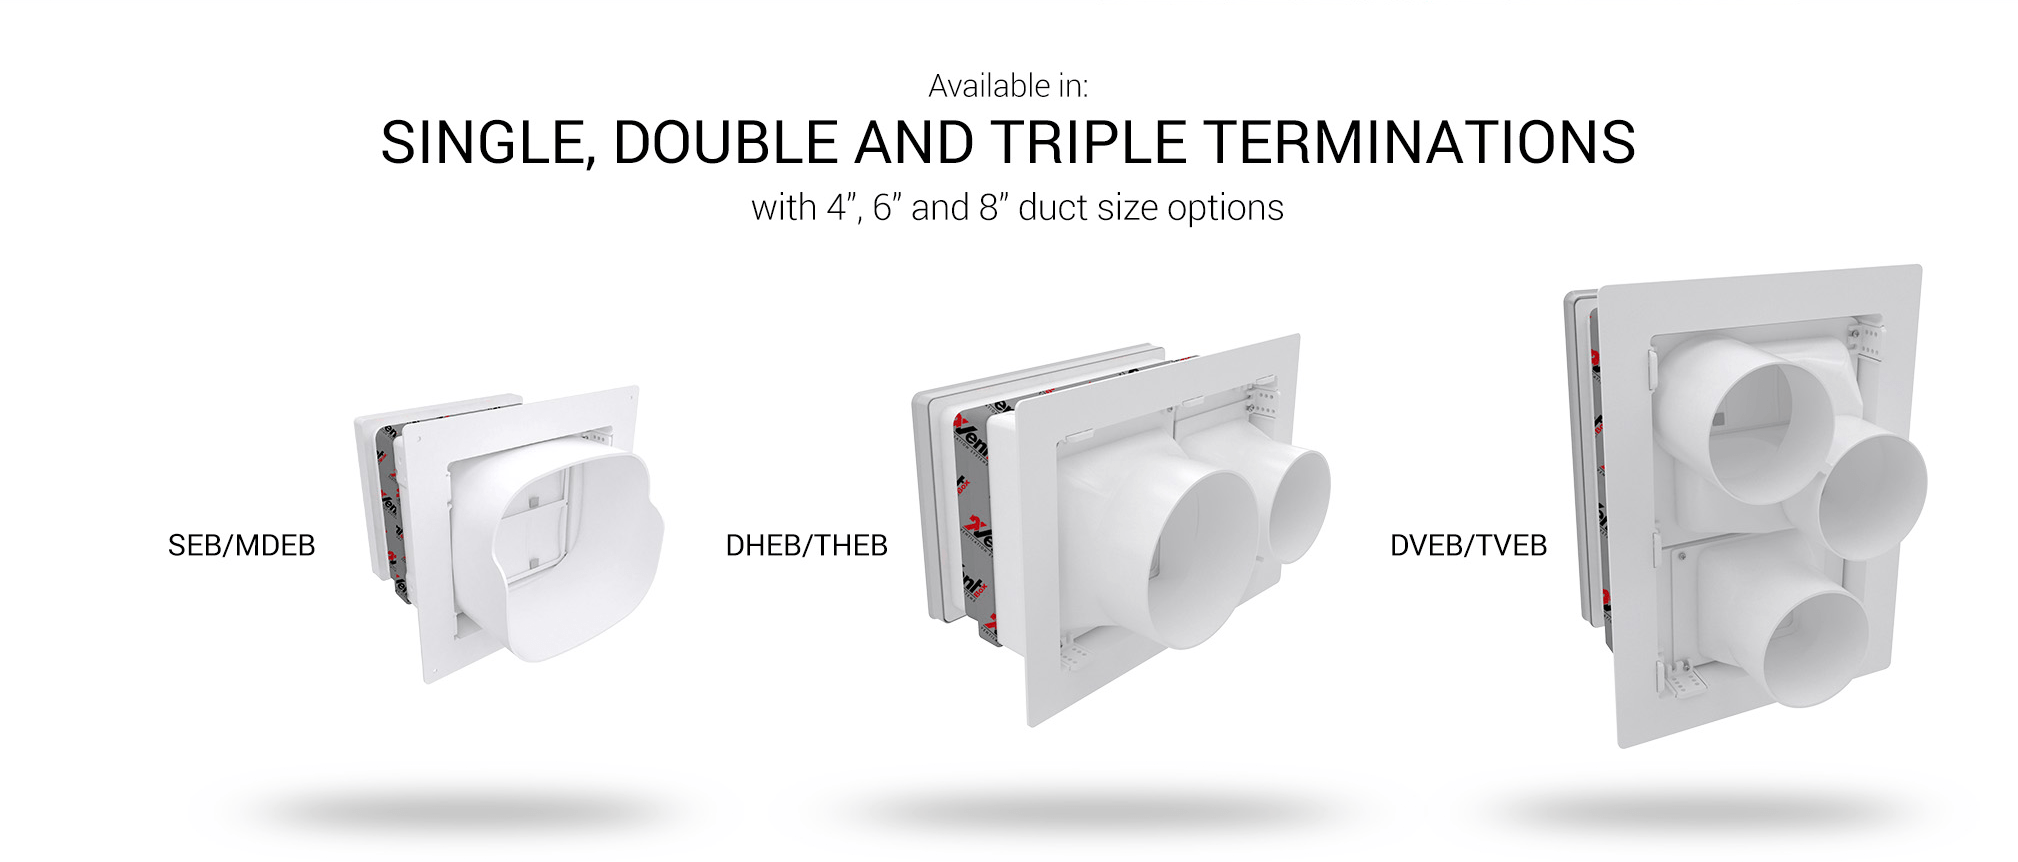 Available in Single, Double, and Triple Terminations